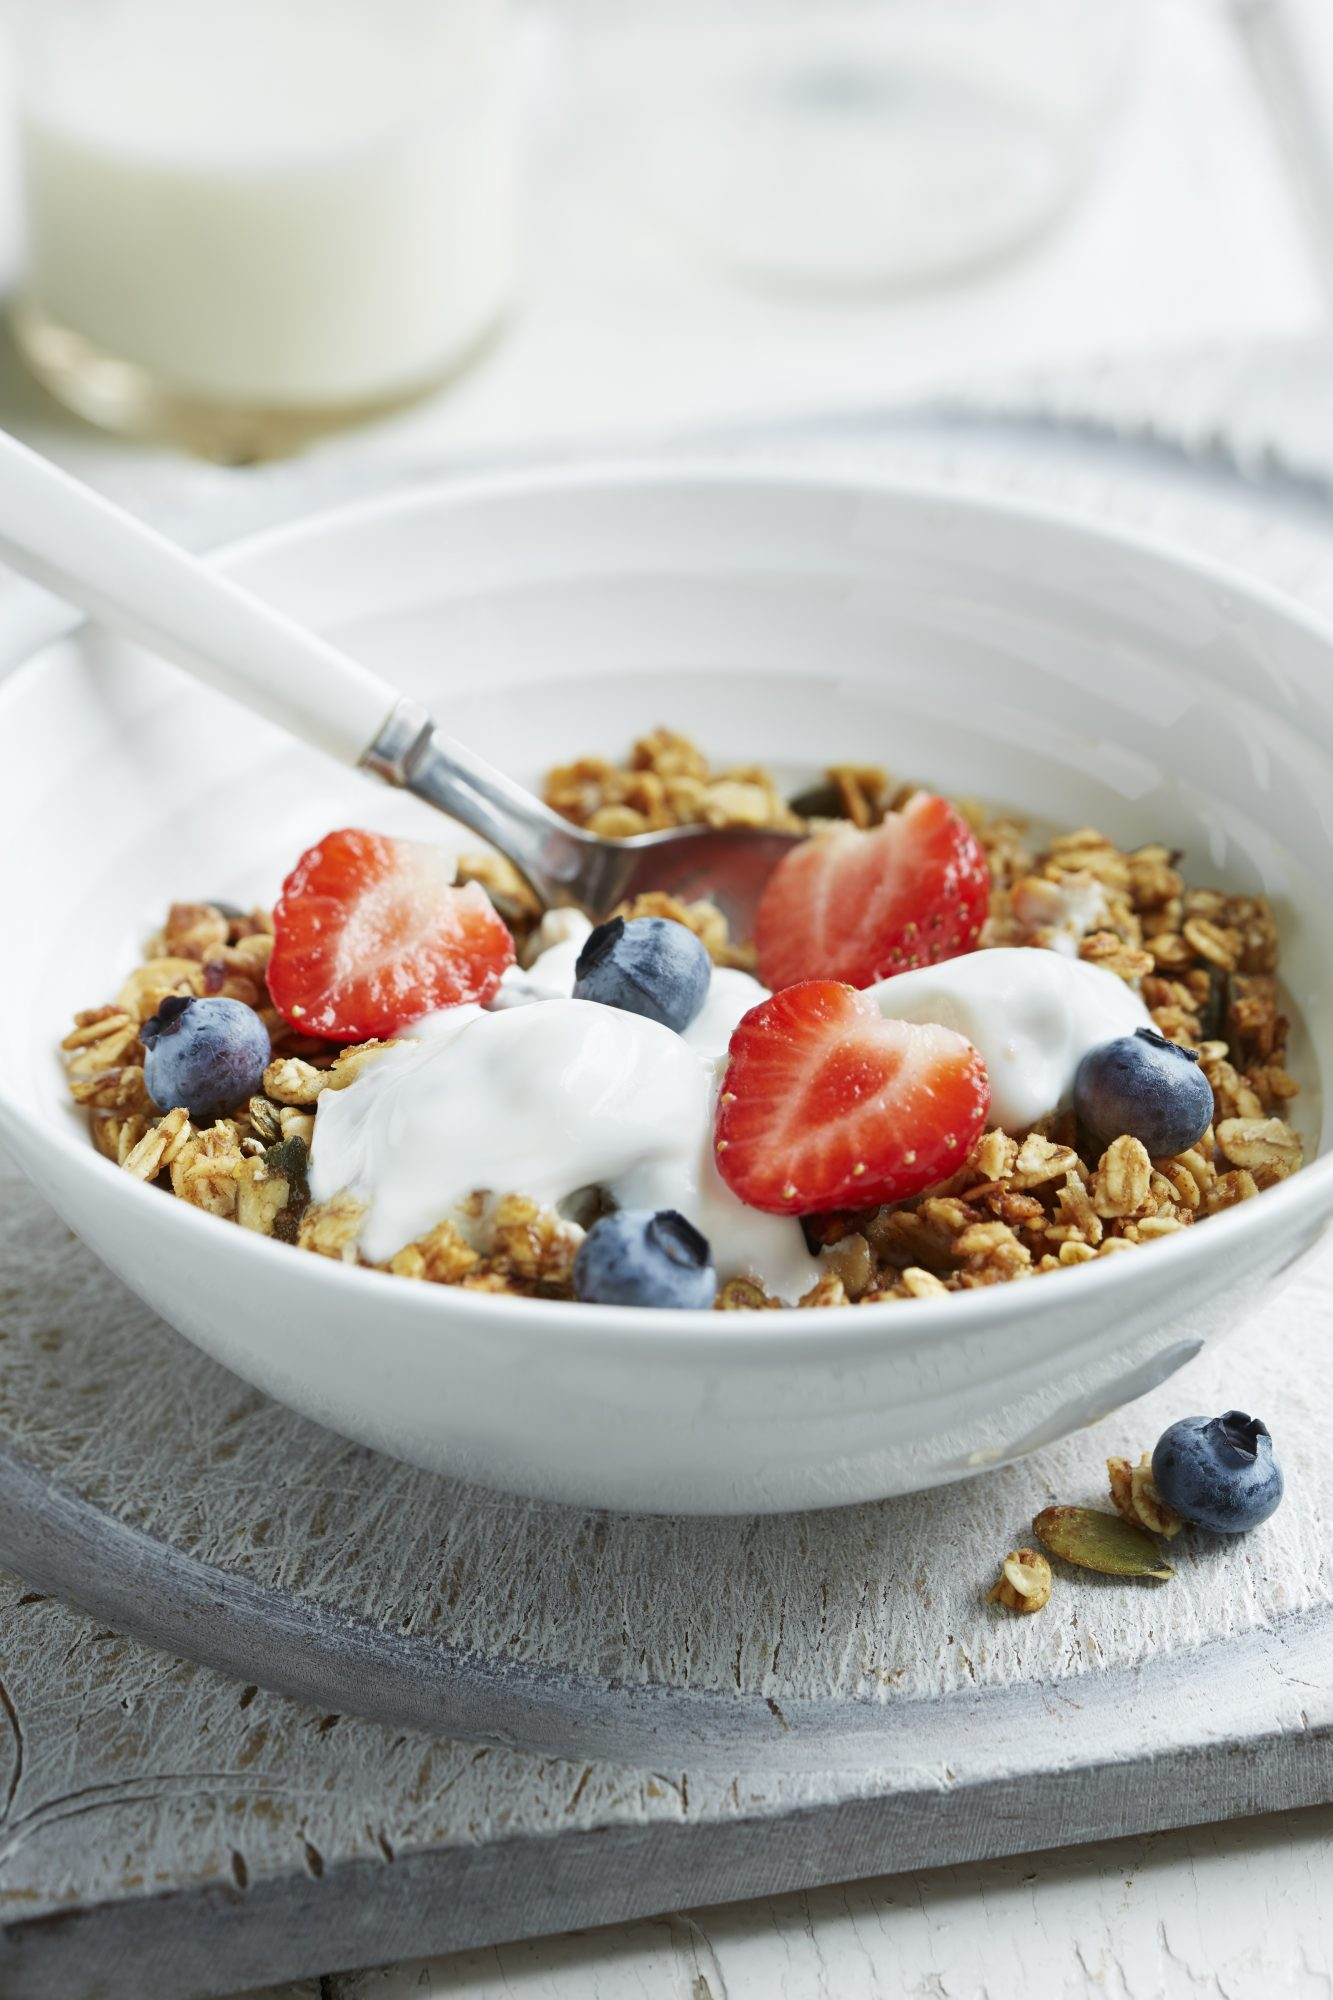 Myth: Skipping breakfast causes weight gain